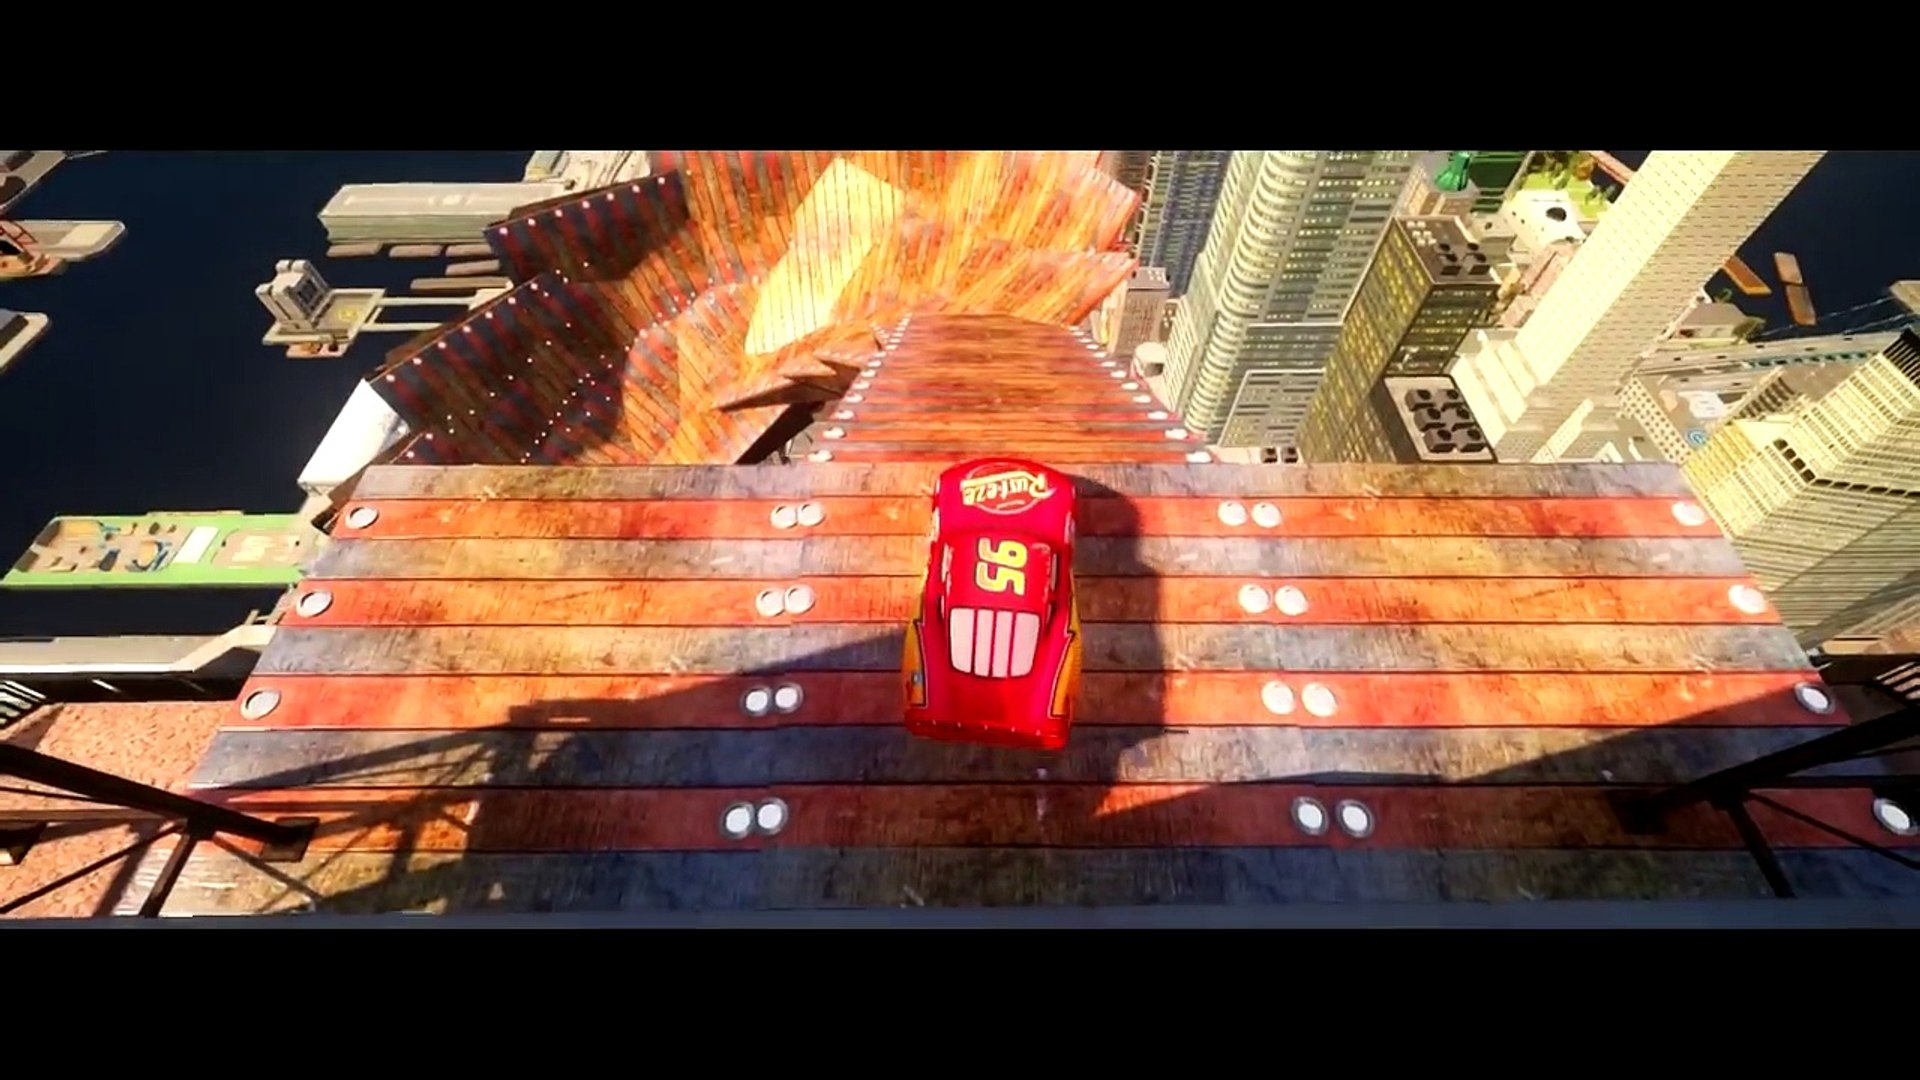 Iron Man riding his Lightning Rayo McQueen Cars HD 1080p Disney Pixar Cars